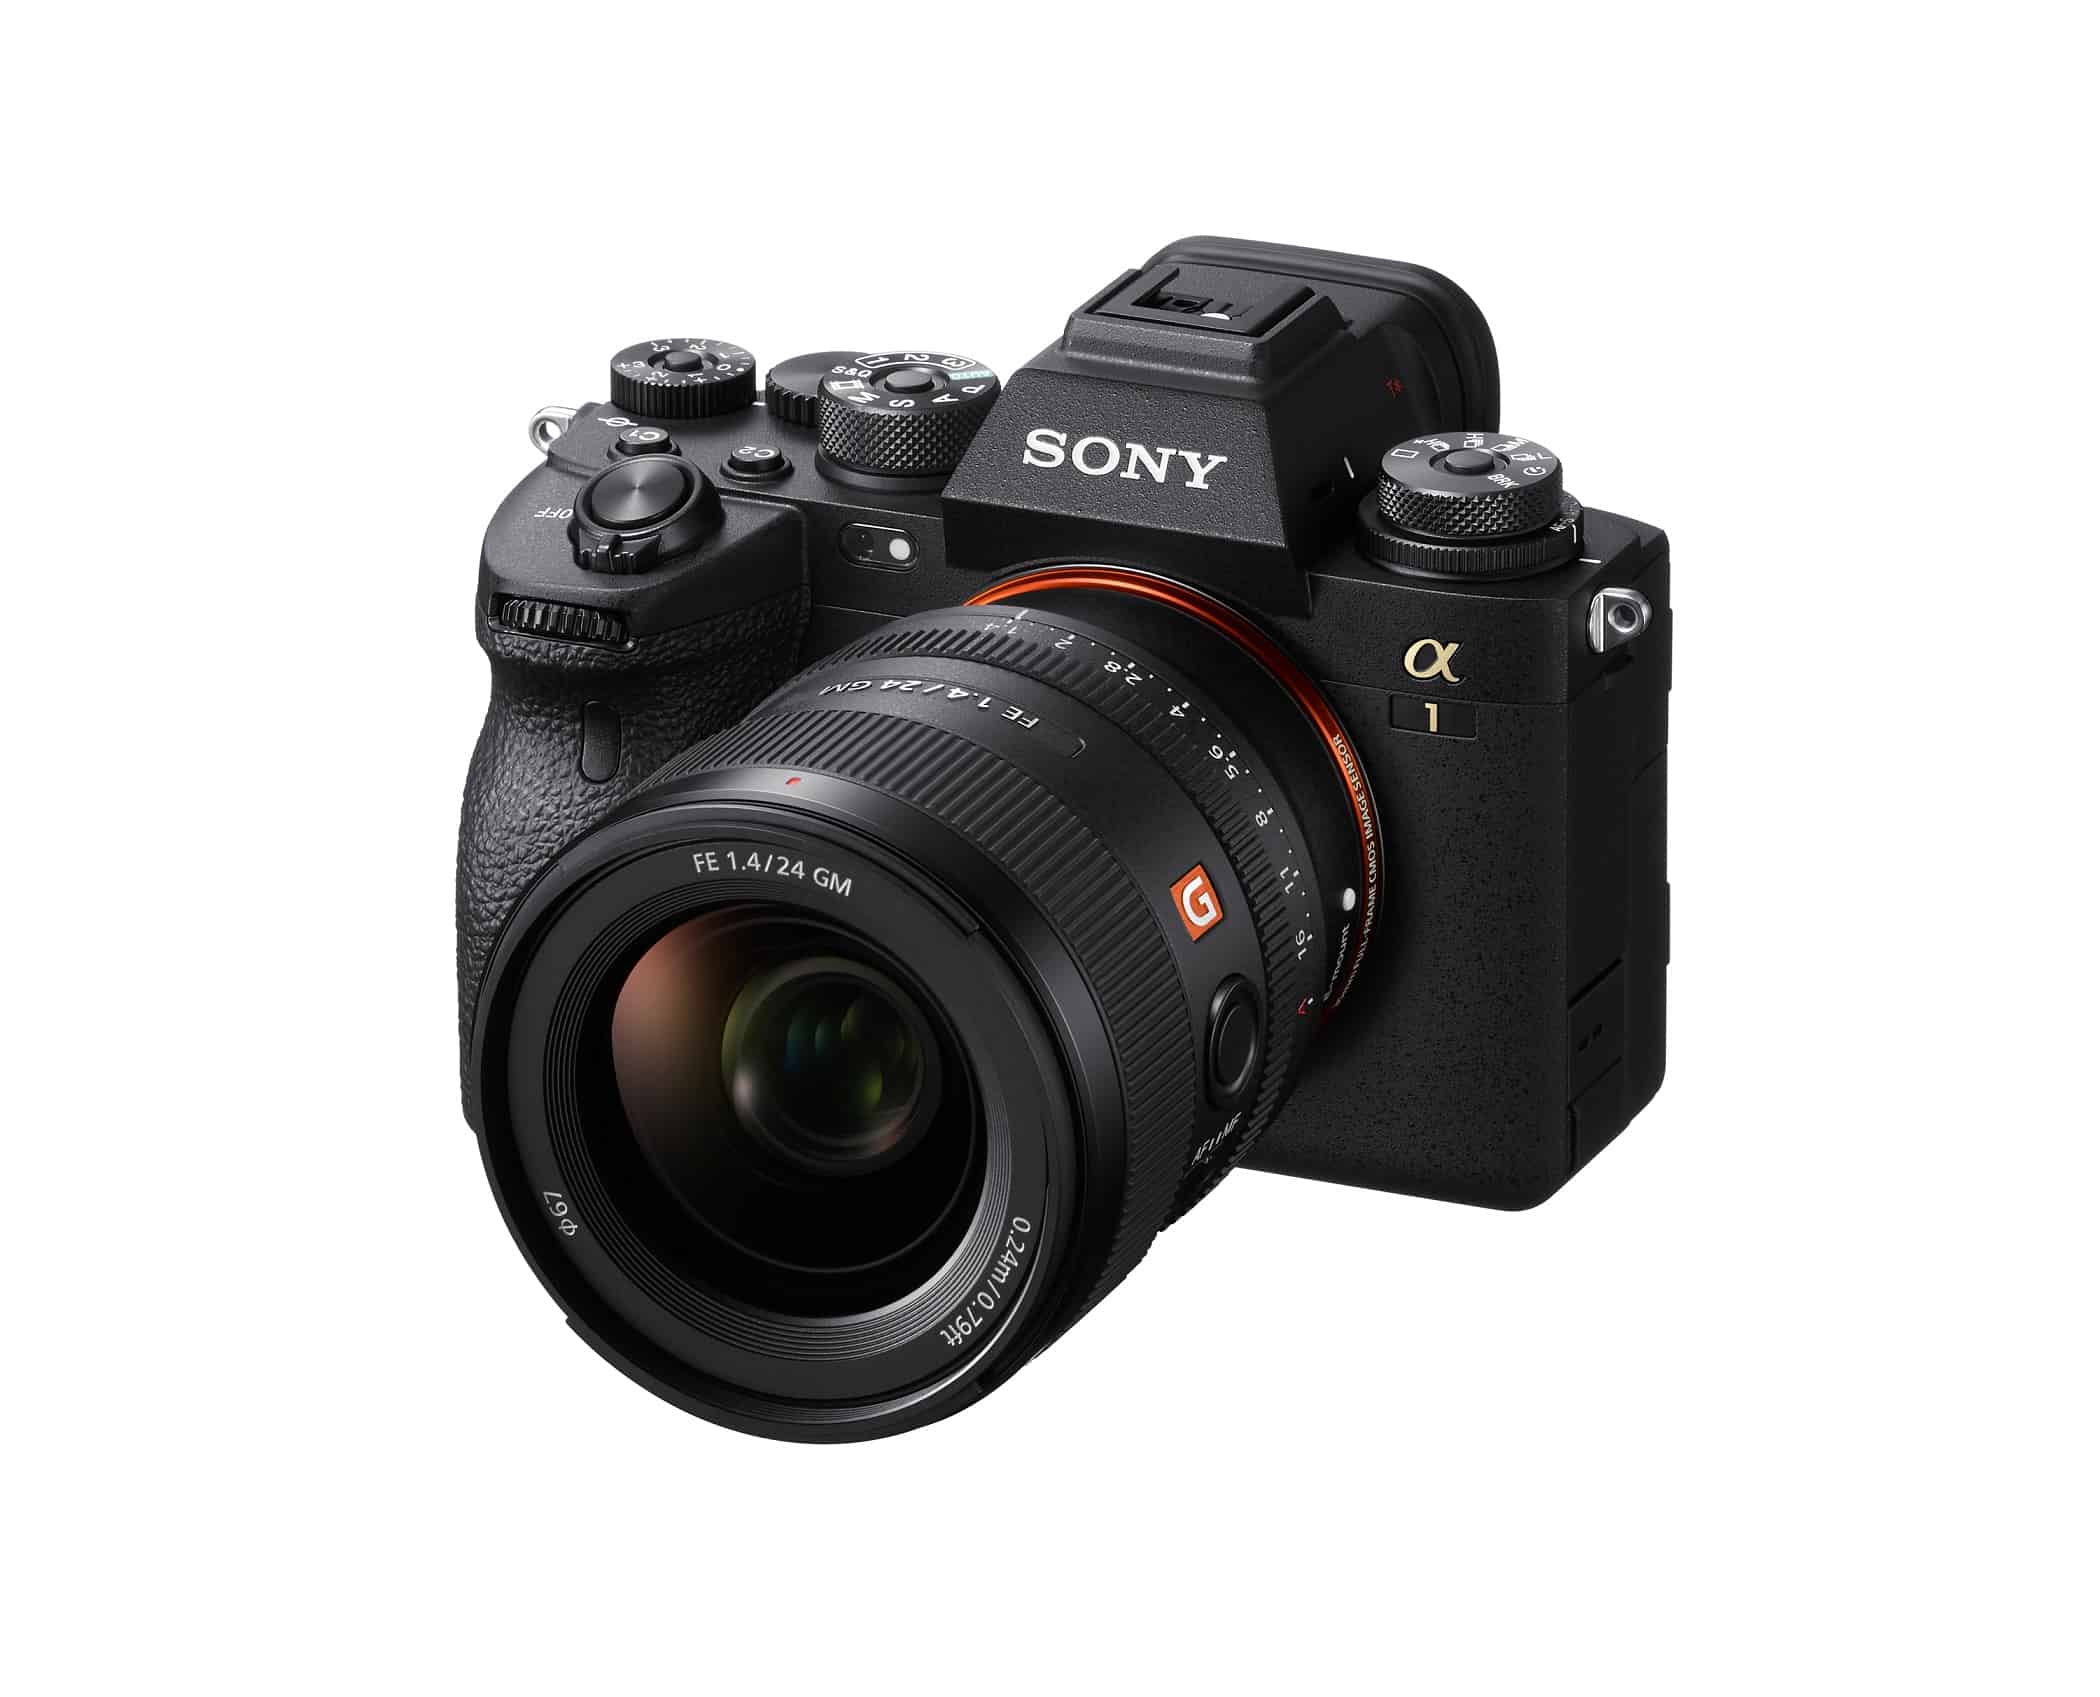 Sony marks a new age of professional photography with the announcement of the Alpha 1 camera